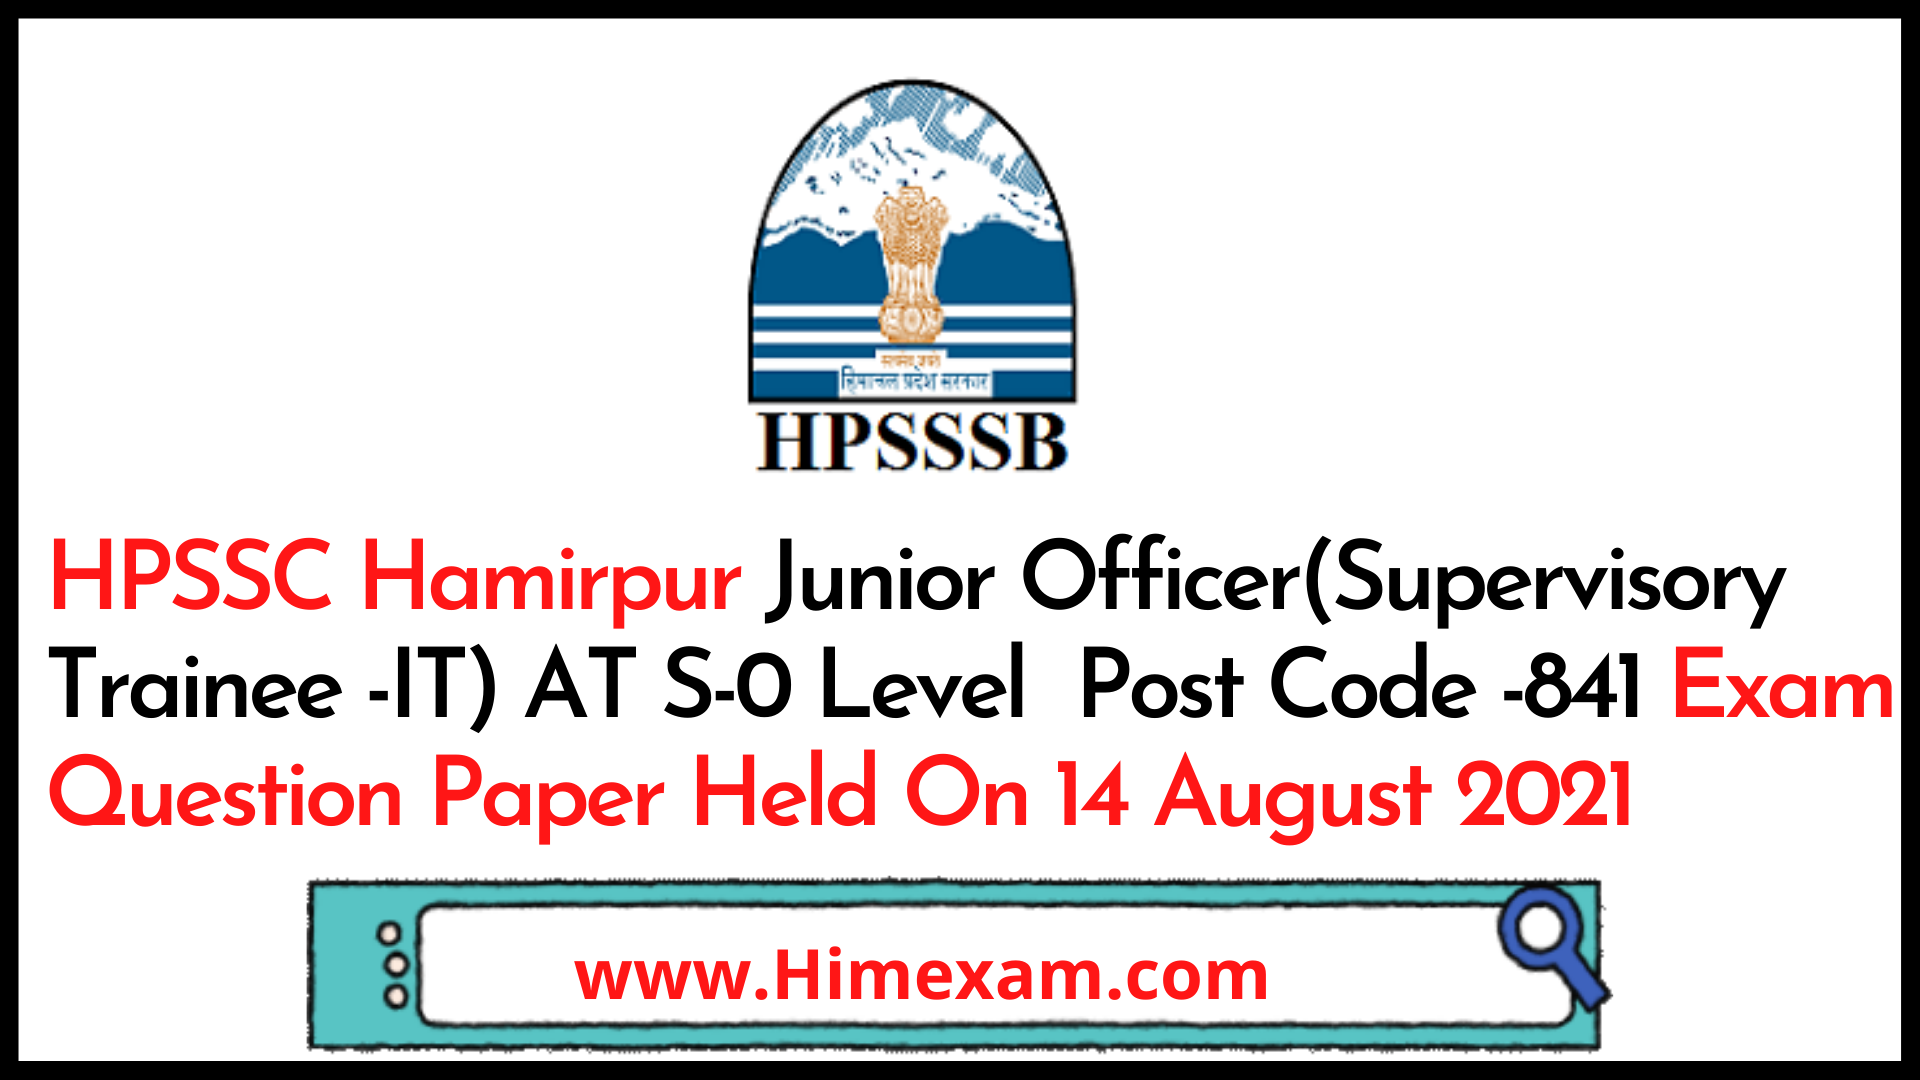 HPSSC Hamirpur Junior Officer(Supervisory Trainee -IT) AT S-0 Level  Post Code -841 Exam Question Paper Held On 14 August 2021